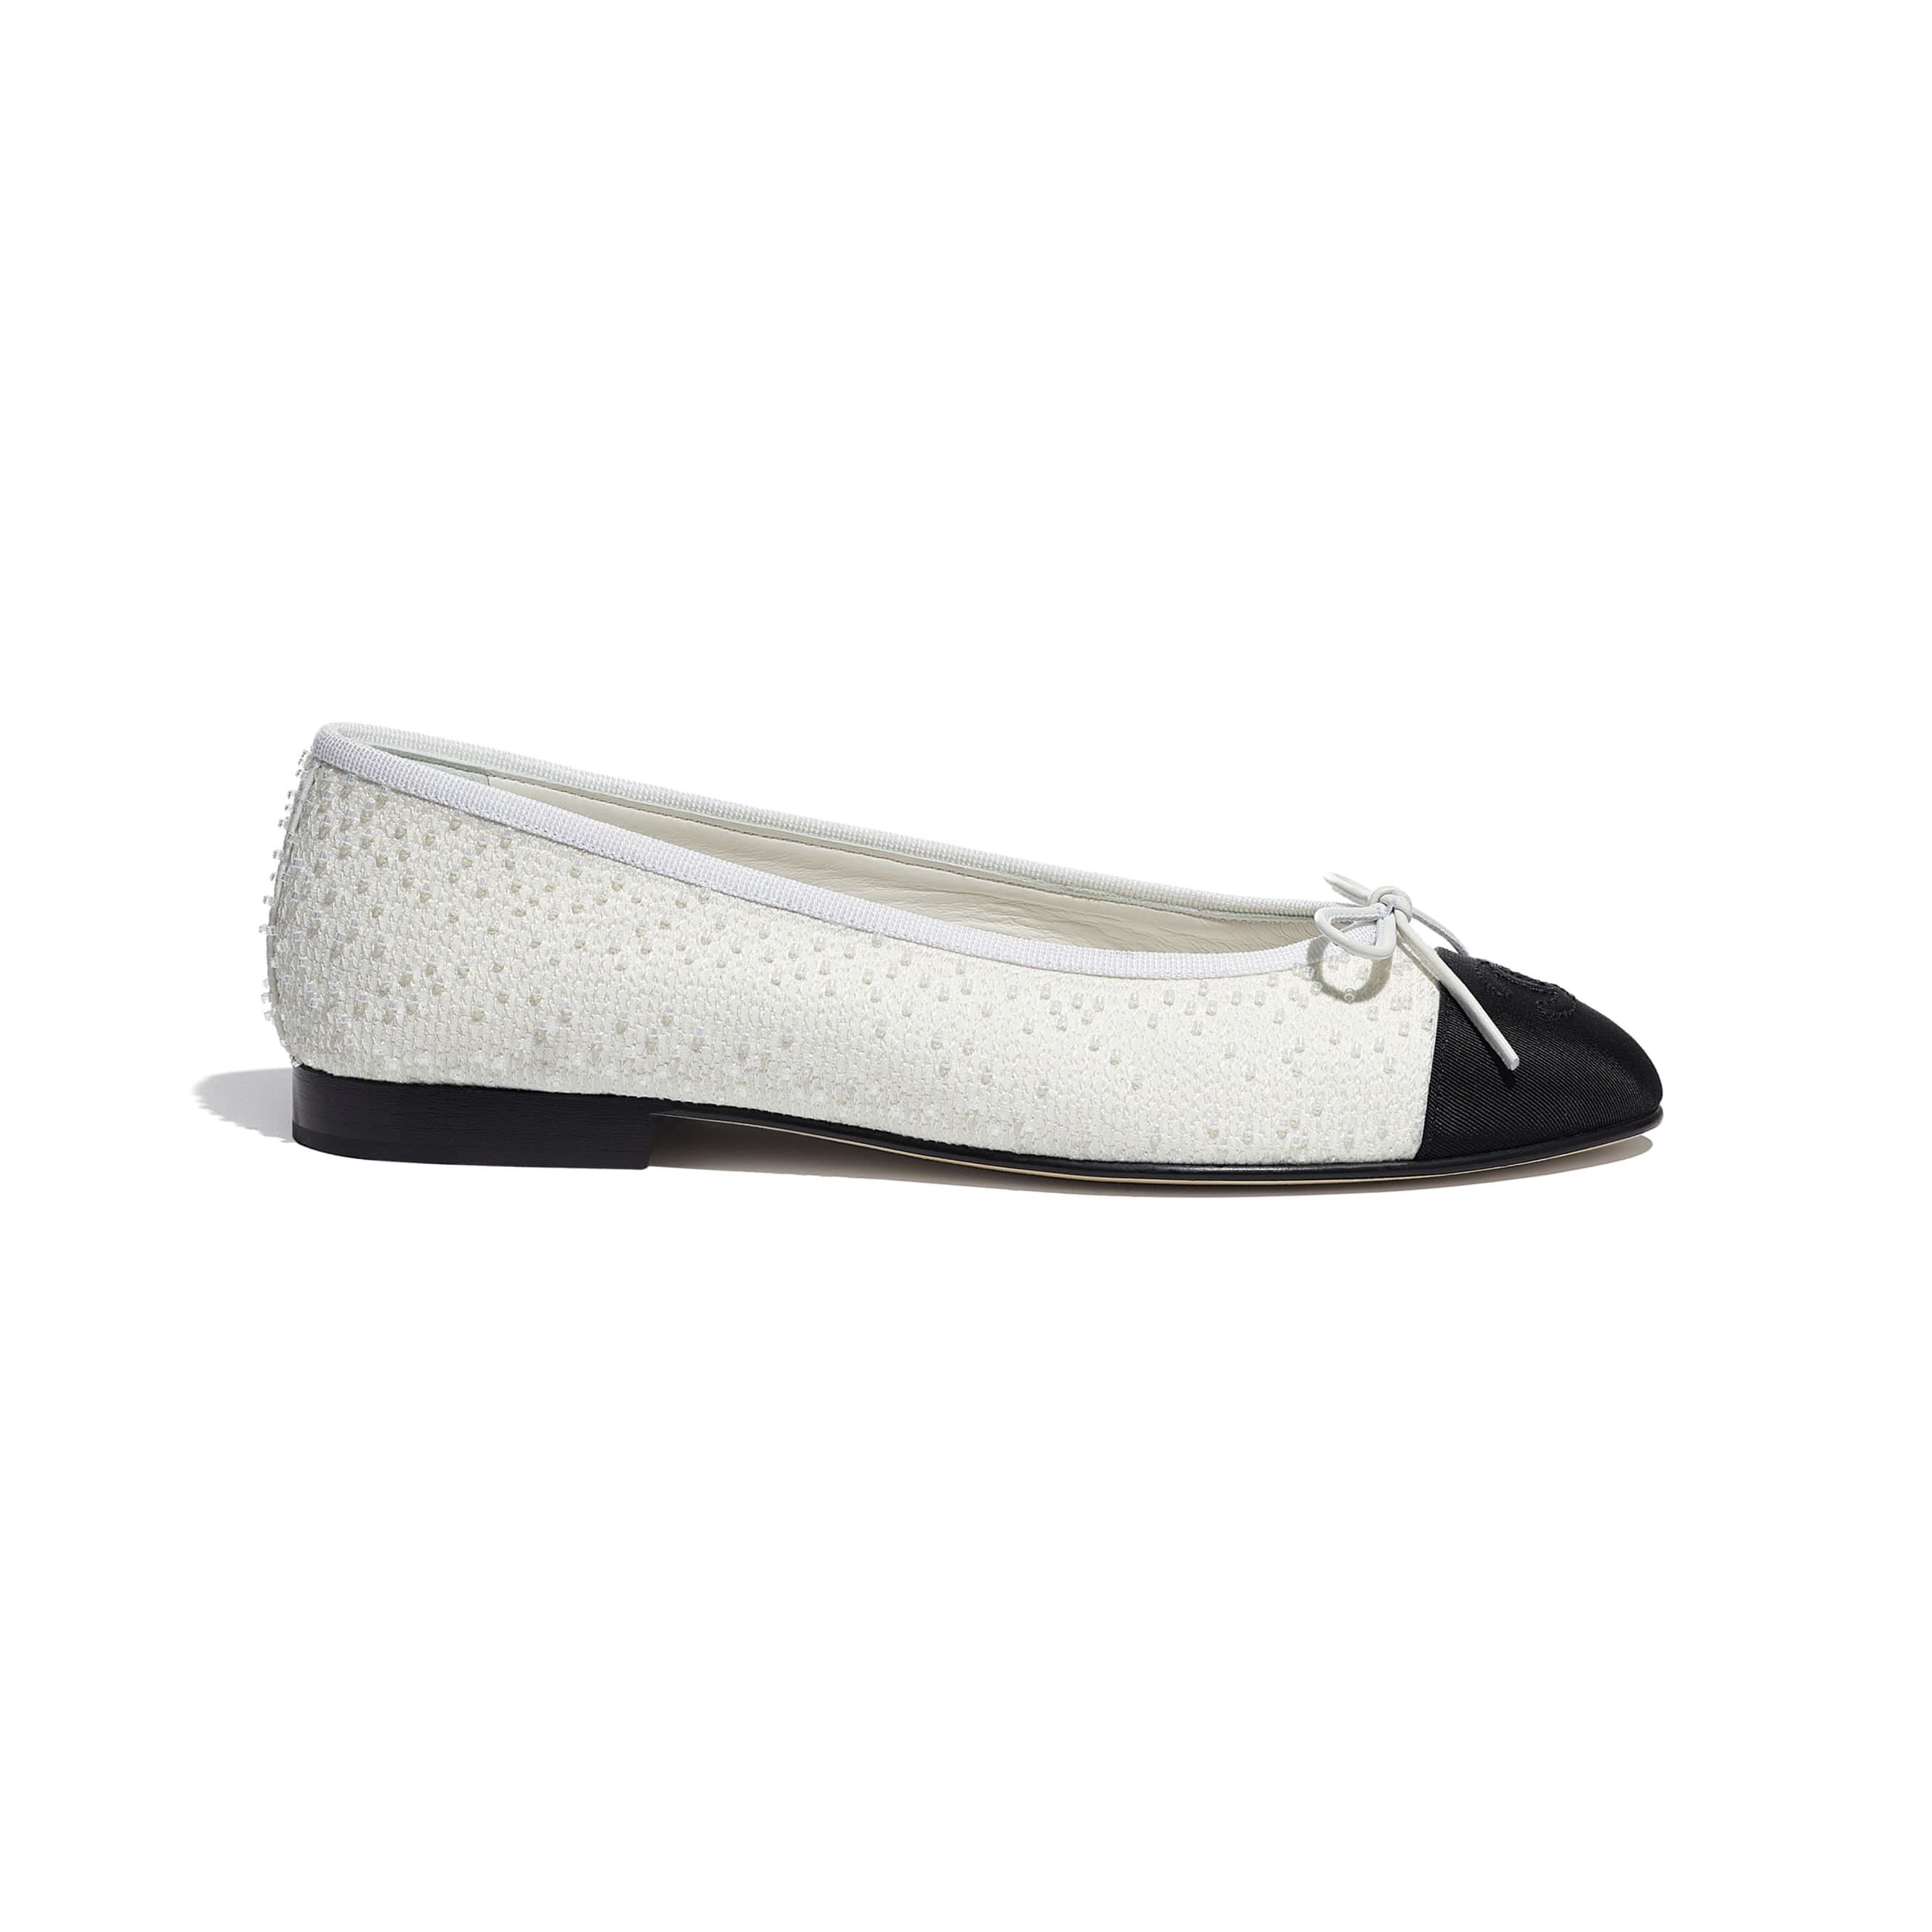 Flats - White & Black - Embroidered Fabric & Grosgrain - CHANEL - Default view - see standard sized version